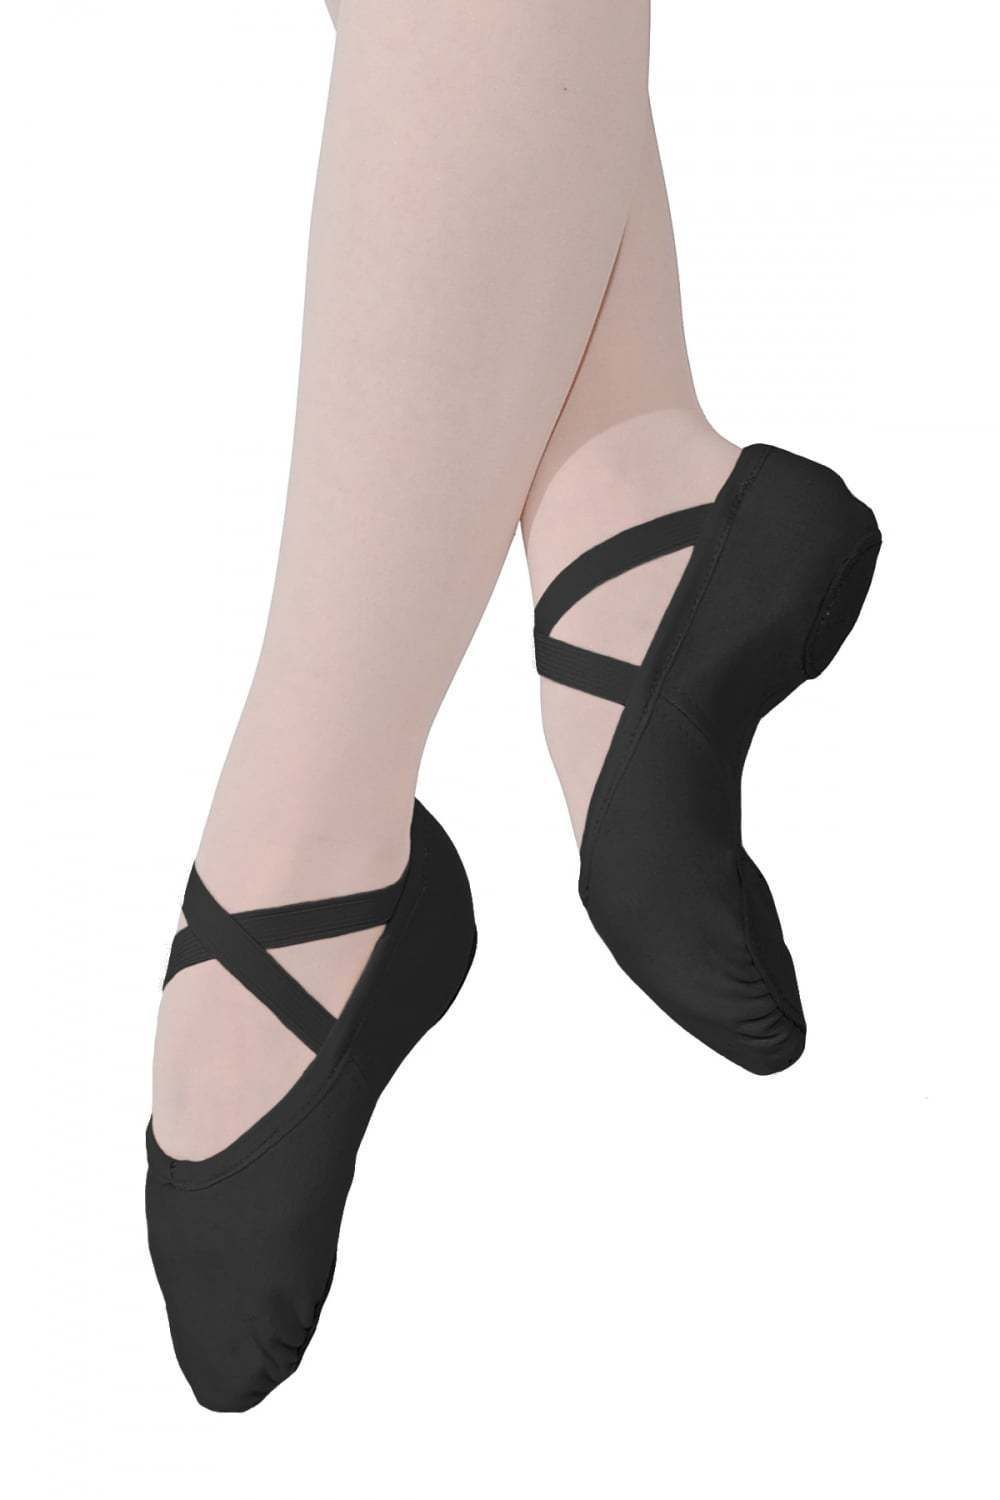 *PPA Boys Ballet Shoes 2*